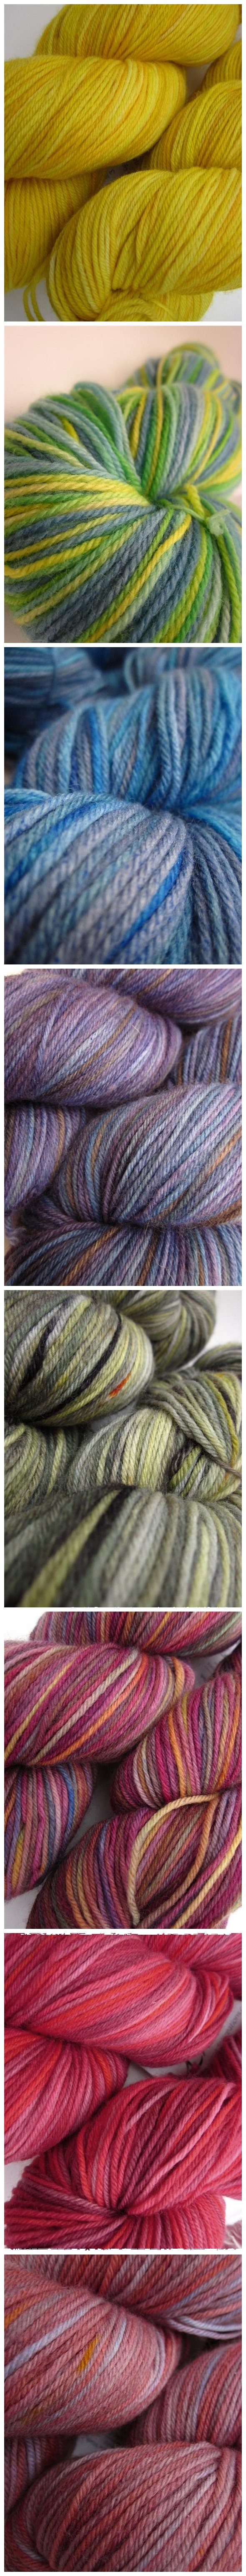 yarn, sock yarn, knitting, crochet, hand-dyed, handdyed, hand-dyed, hand painted, indie dyer, dyer, spacecadet, space cadet